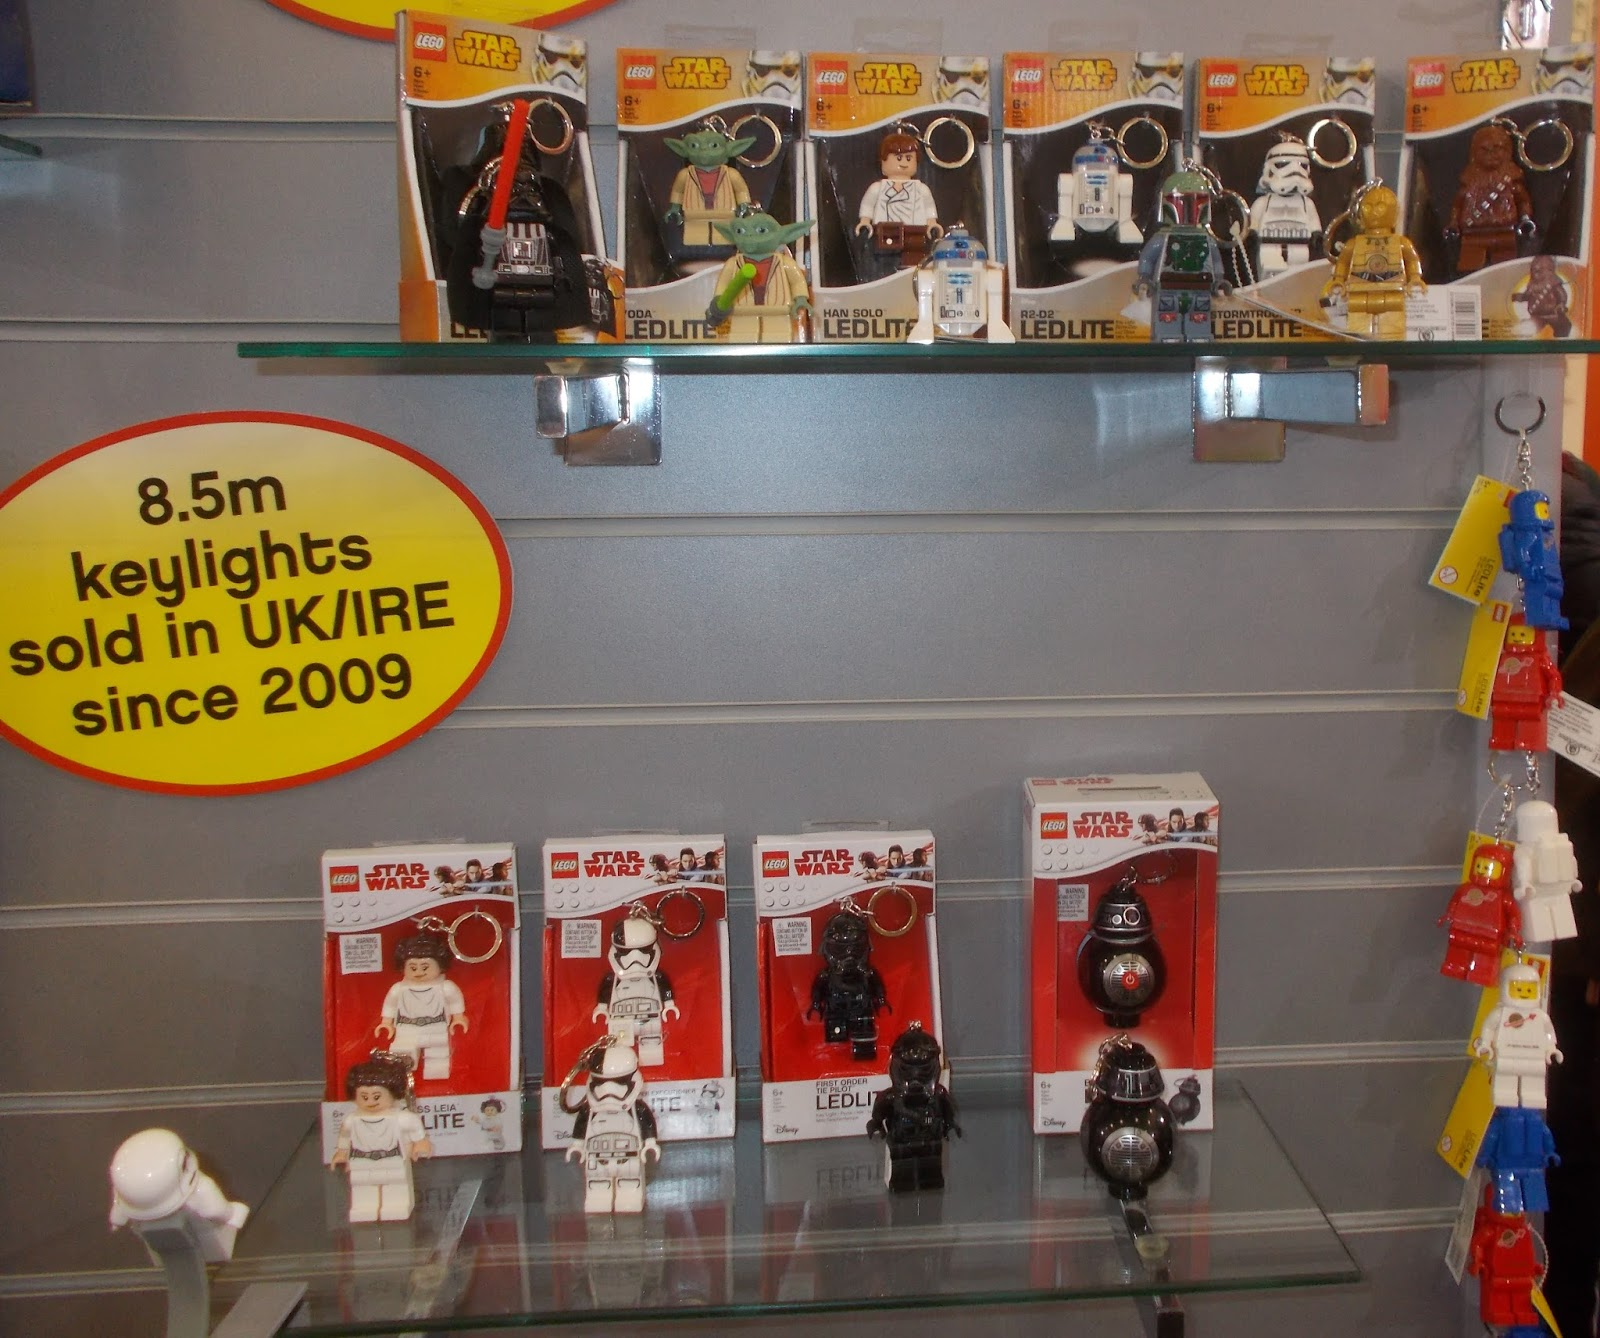 T is for Toy Fair 2018 Reports   Re Creation   Lego Franchise     Re Creation has the territory license for Lego s non toy stuff  and they  had plenty of other things on display  bags  belts  stationary  Swatch like